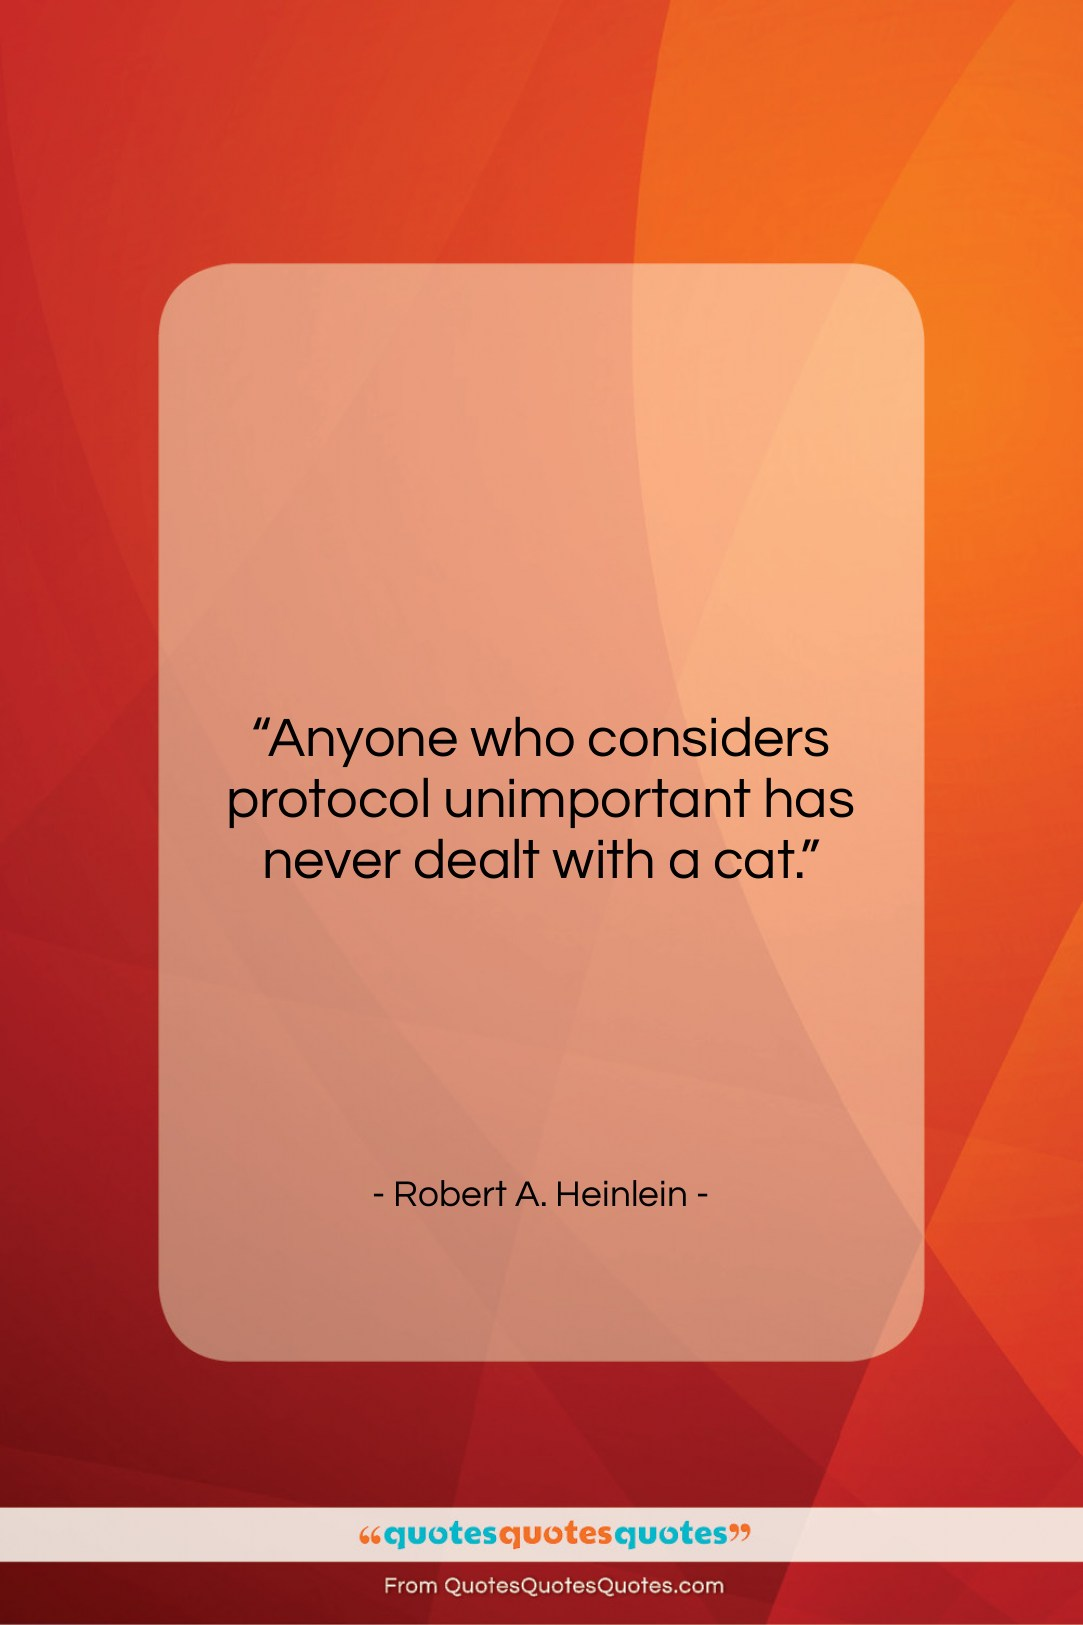 """Robert A. Heinlein quote: """"Anyone who considers protocol unimportant has never…""""- at QuotesQuotesQuotes.com"""